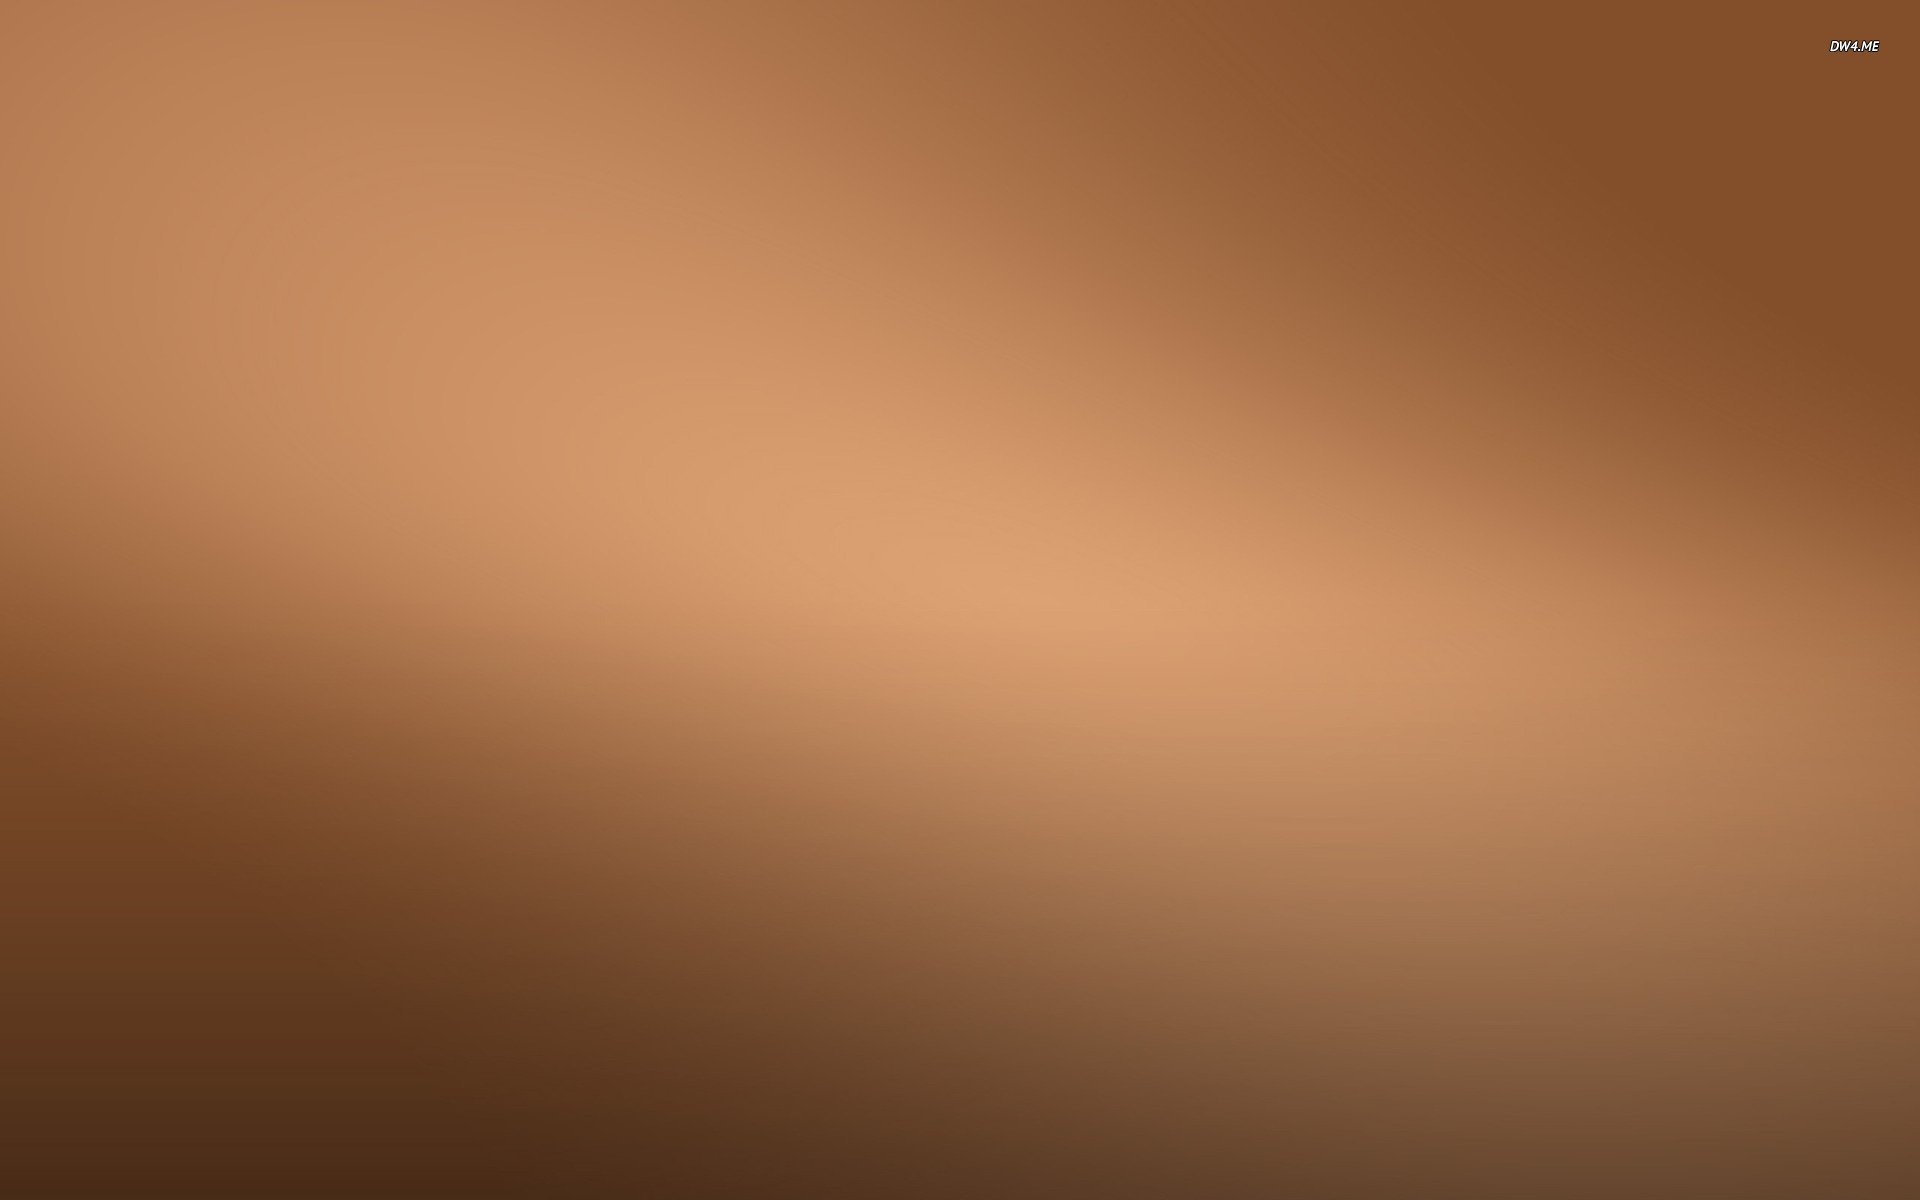 Bronze wallpaper   Minimalistic wallpapers   387 1920x1200